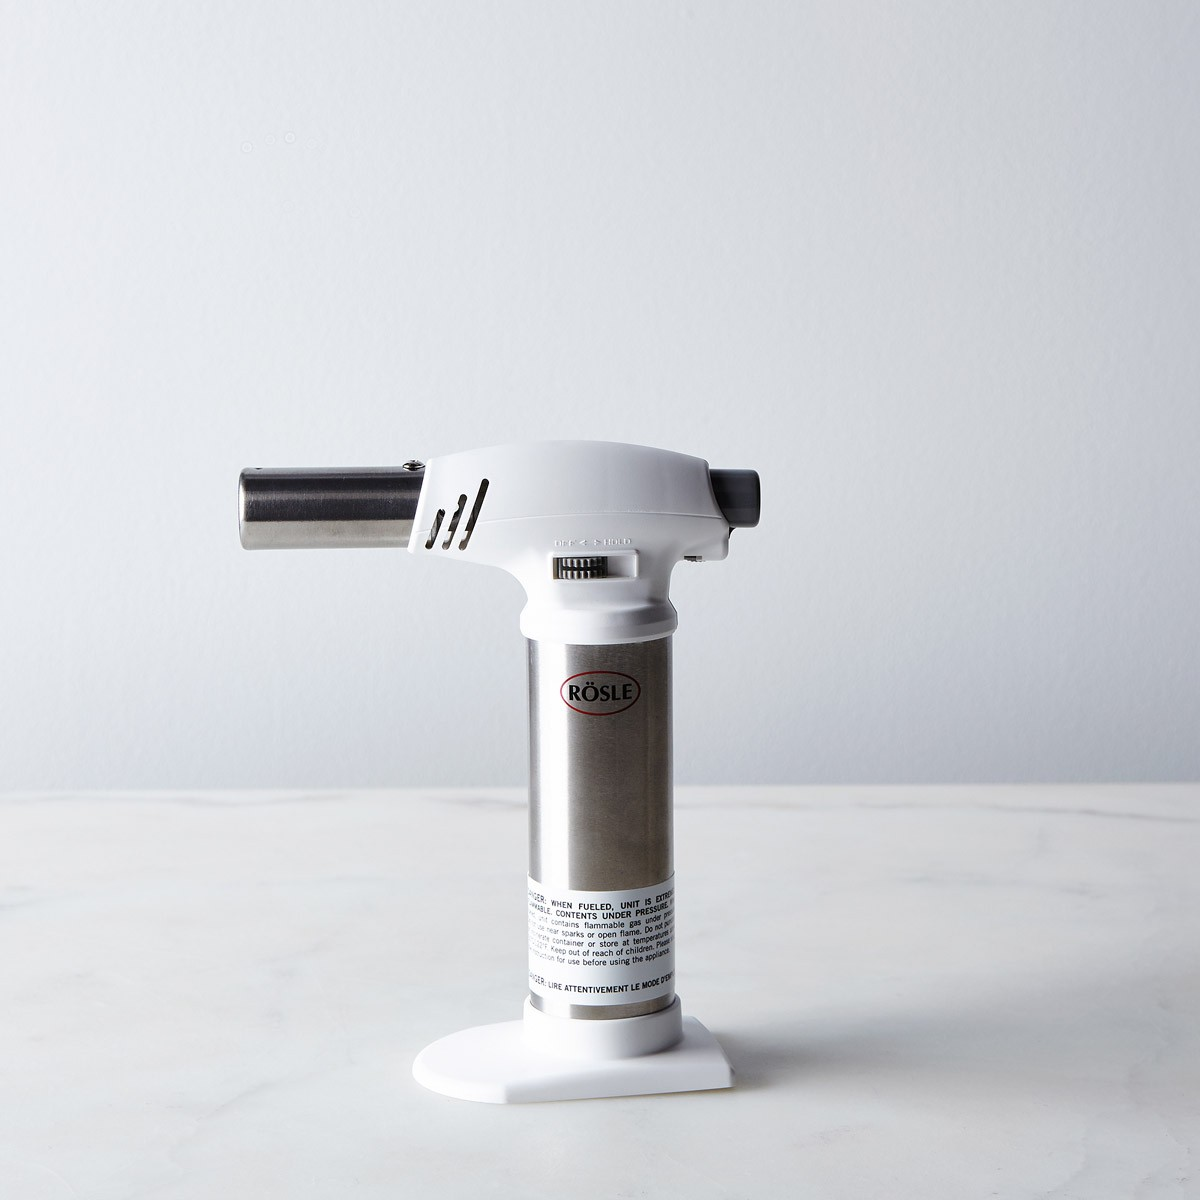 Rösle Kitchen Torch